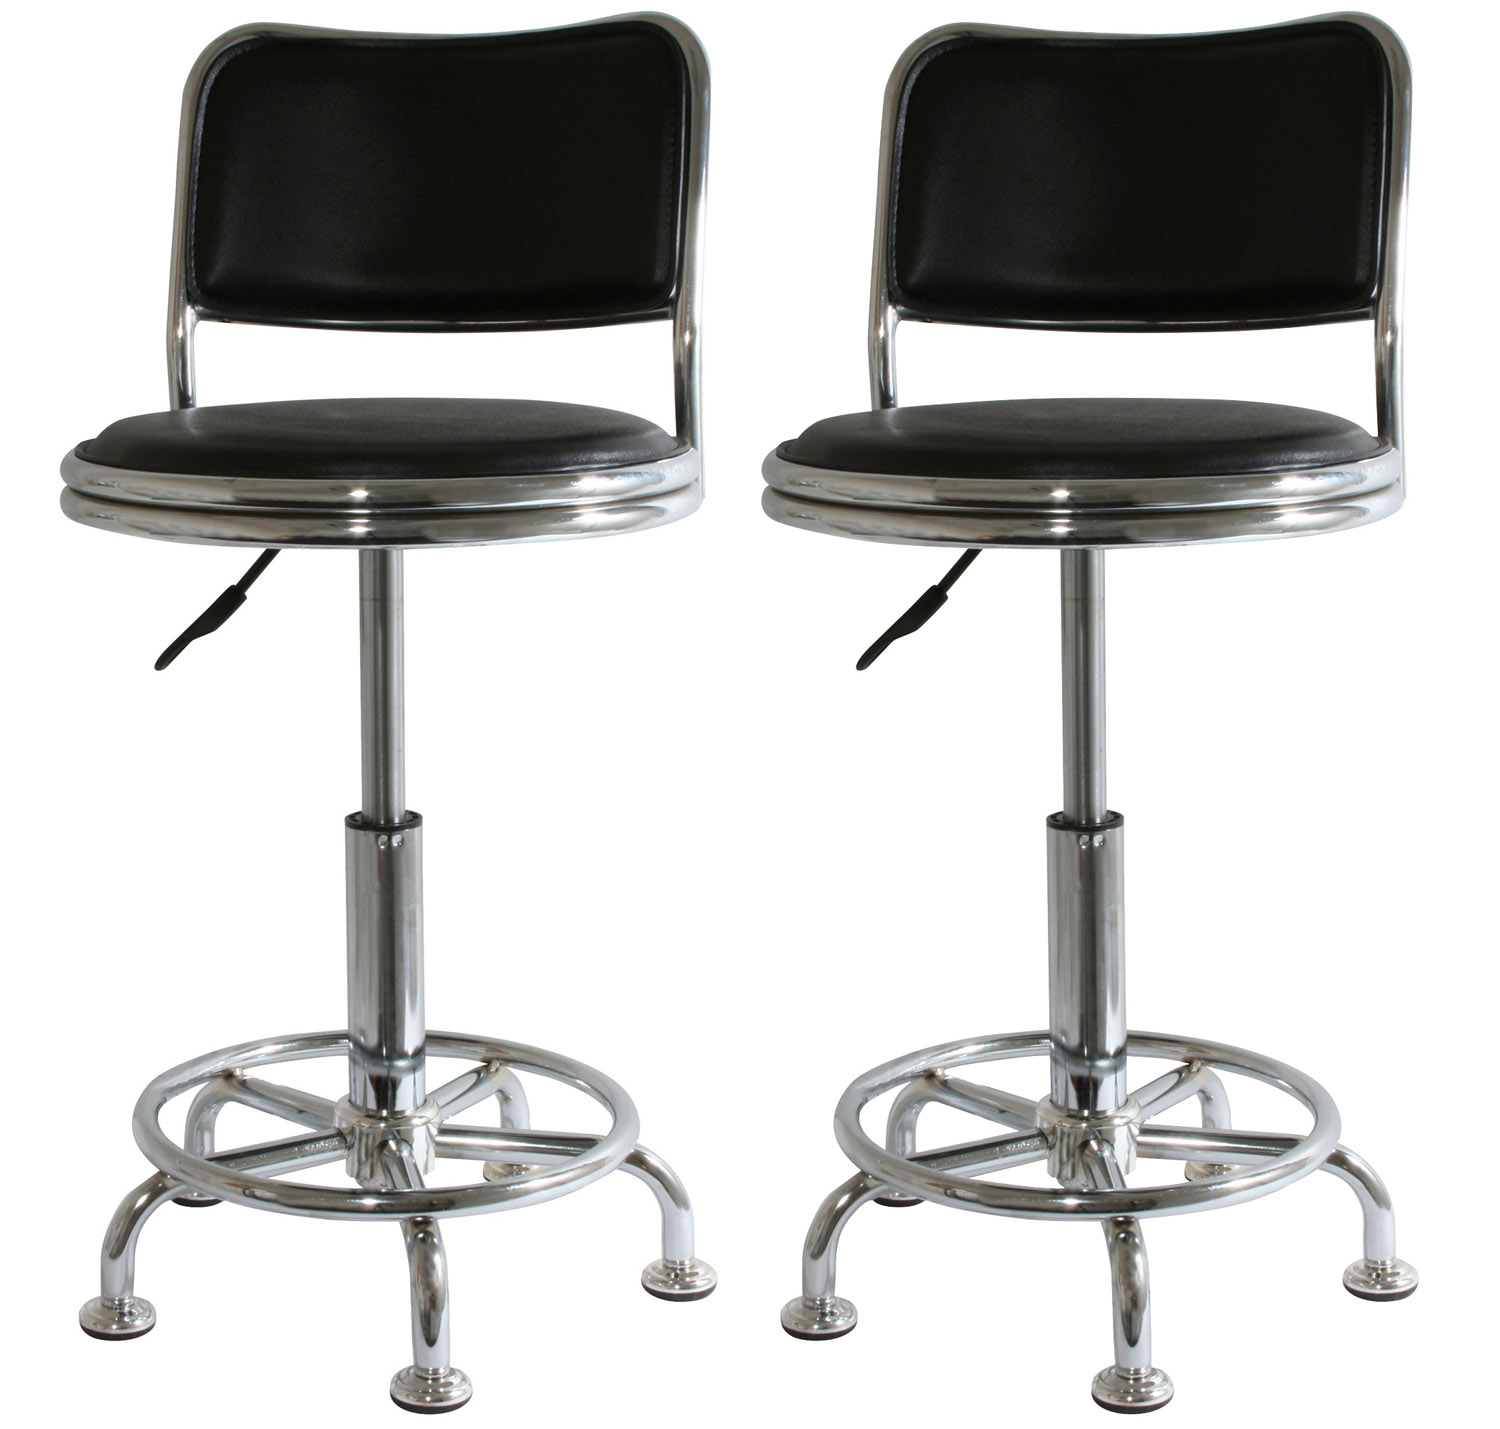 bs2088set amerihome adjustable shop stools